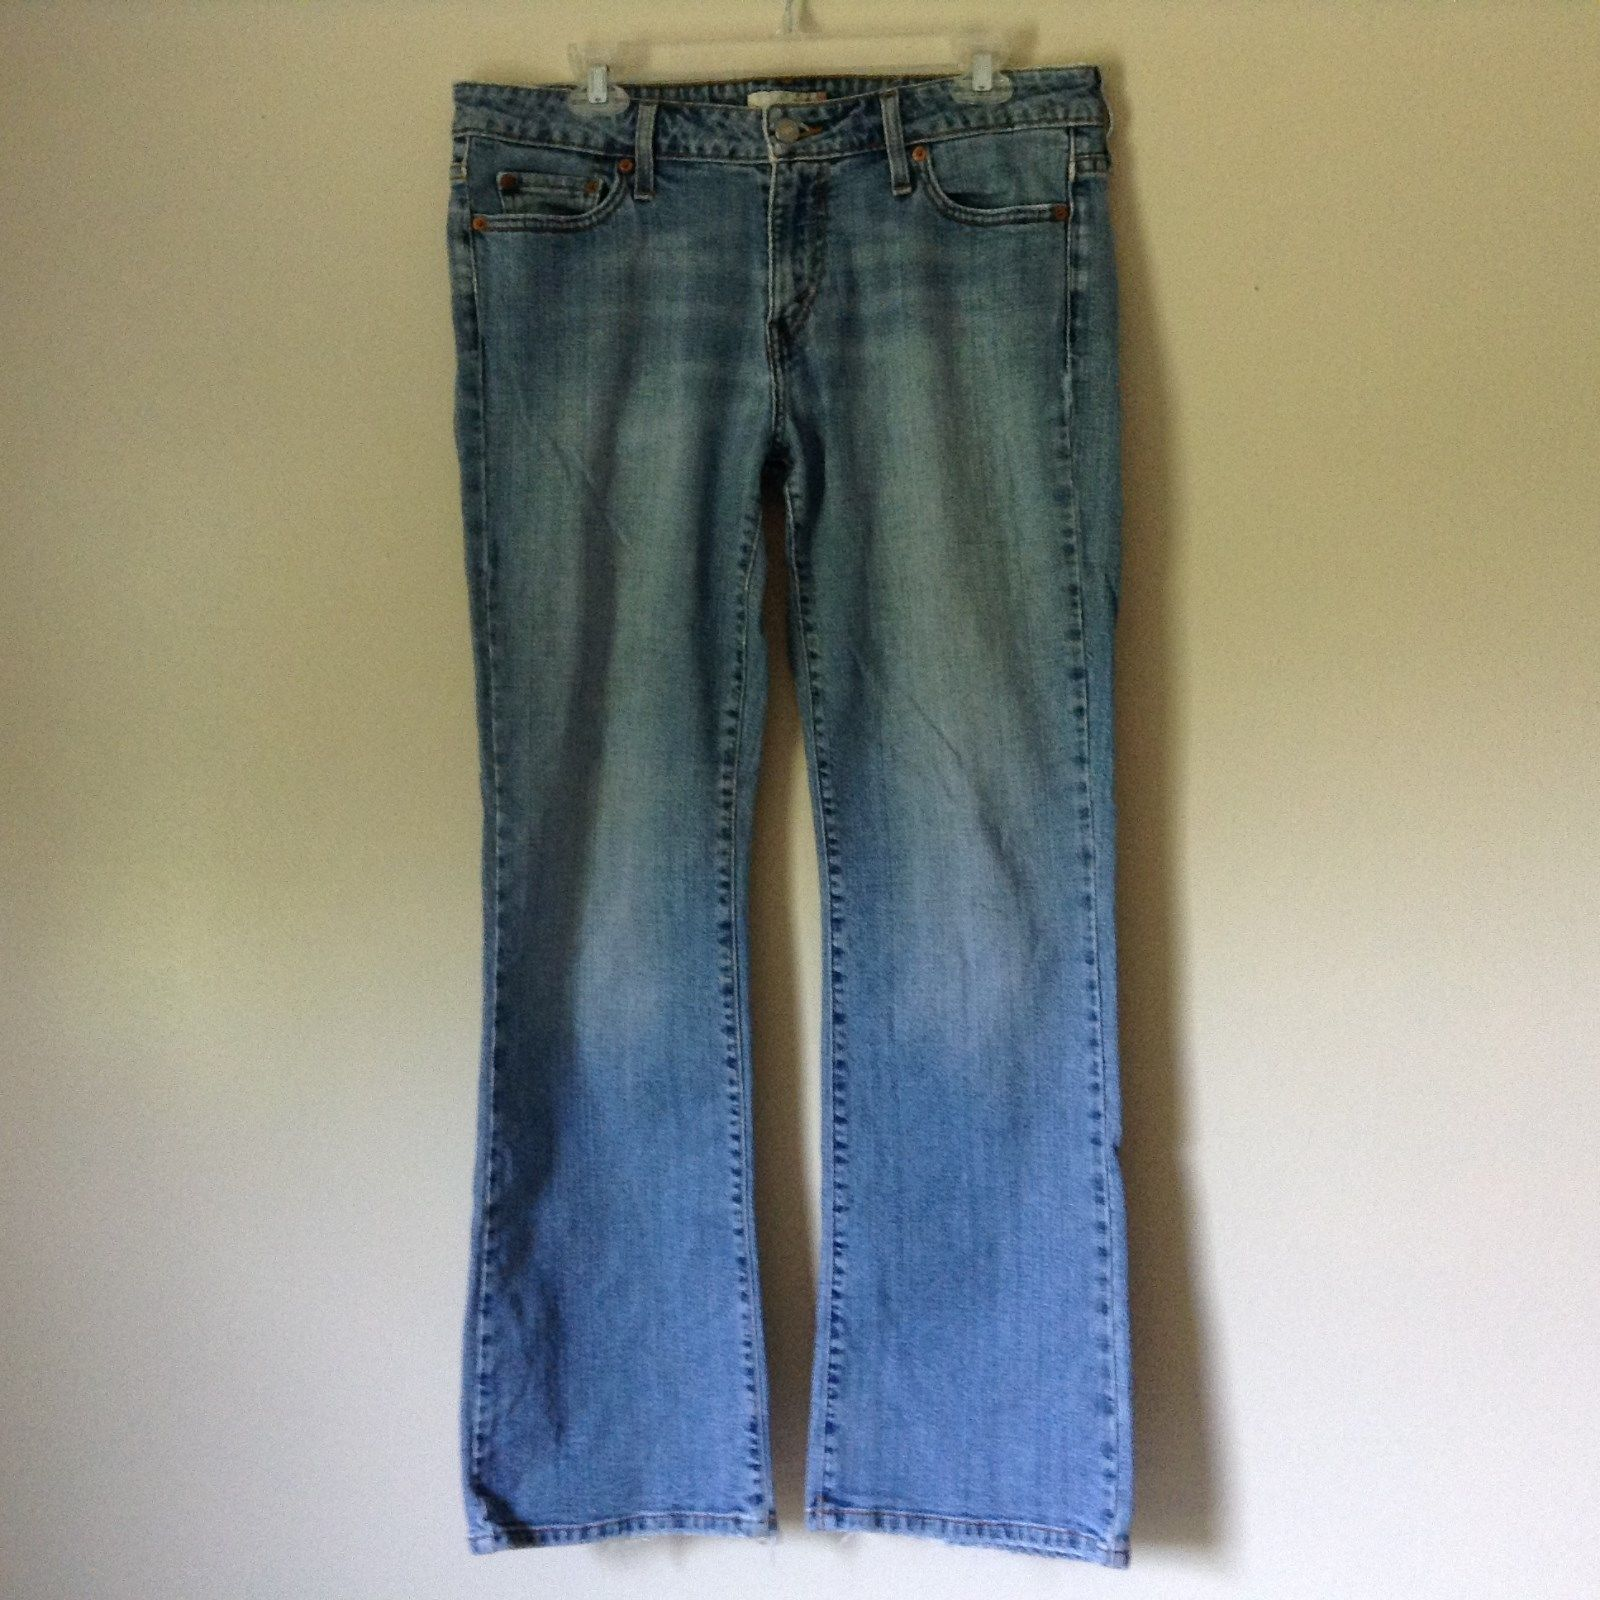 Levis Blue Jeans Front and Back Pockets Low Boot Cut Size 12 Medium